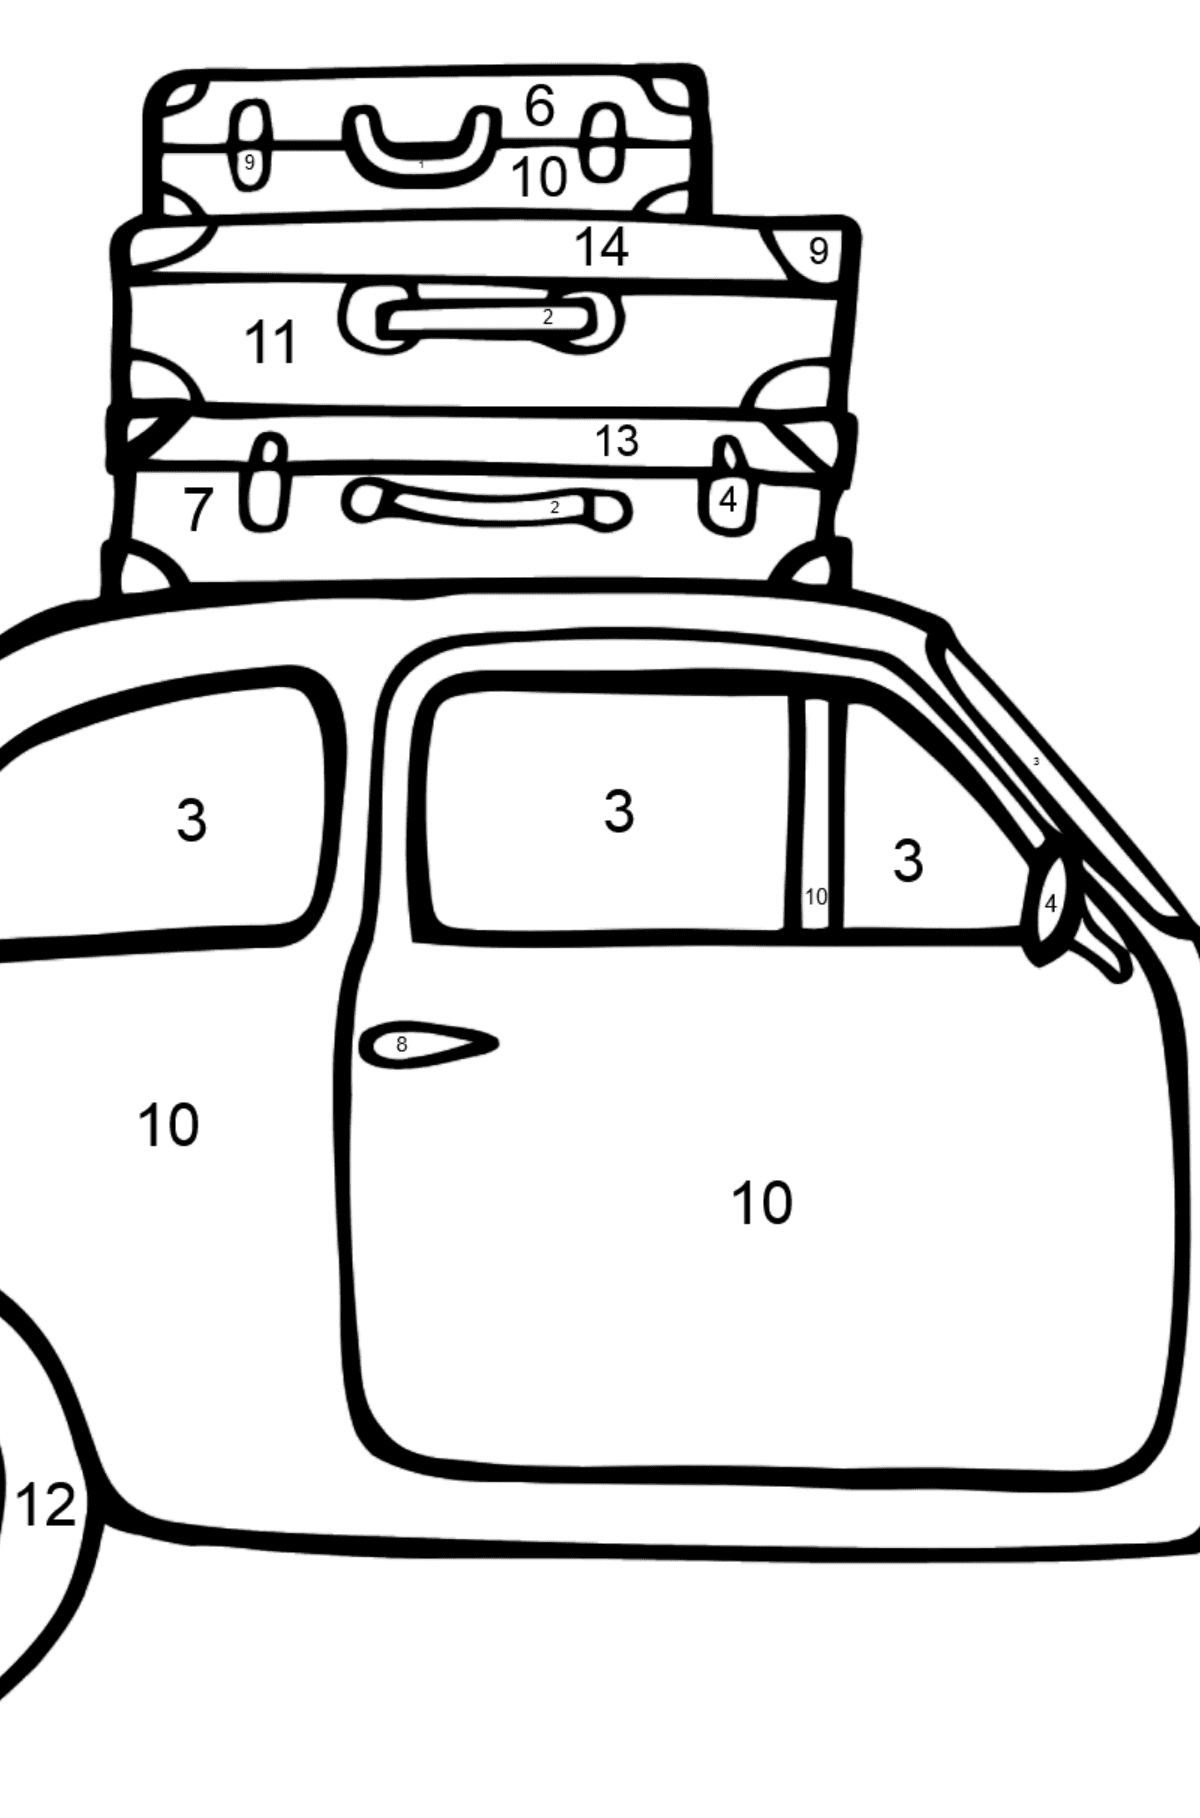 Fiat 600 car coloring page - Coloring by Numbers for Kids